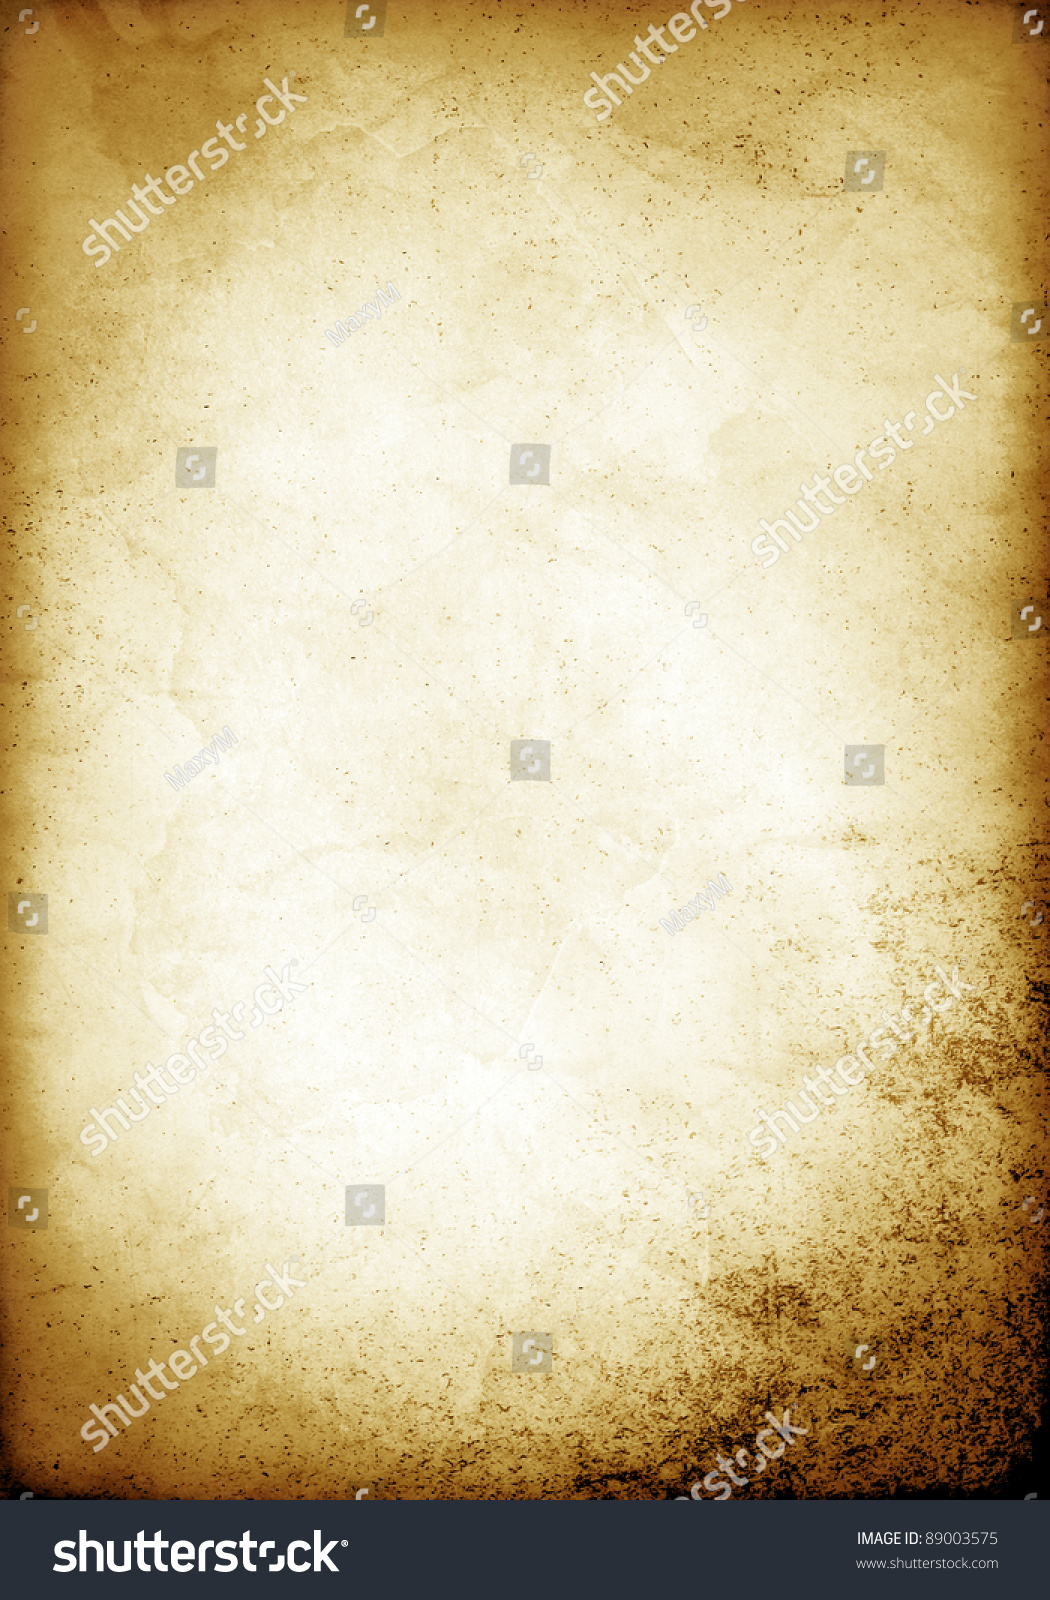 old paper template stock illustration 89003575 - shutterstock, Powerpoint templates